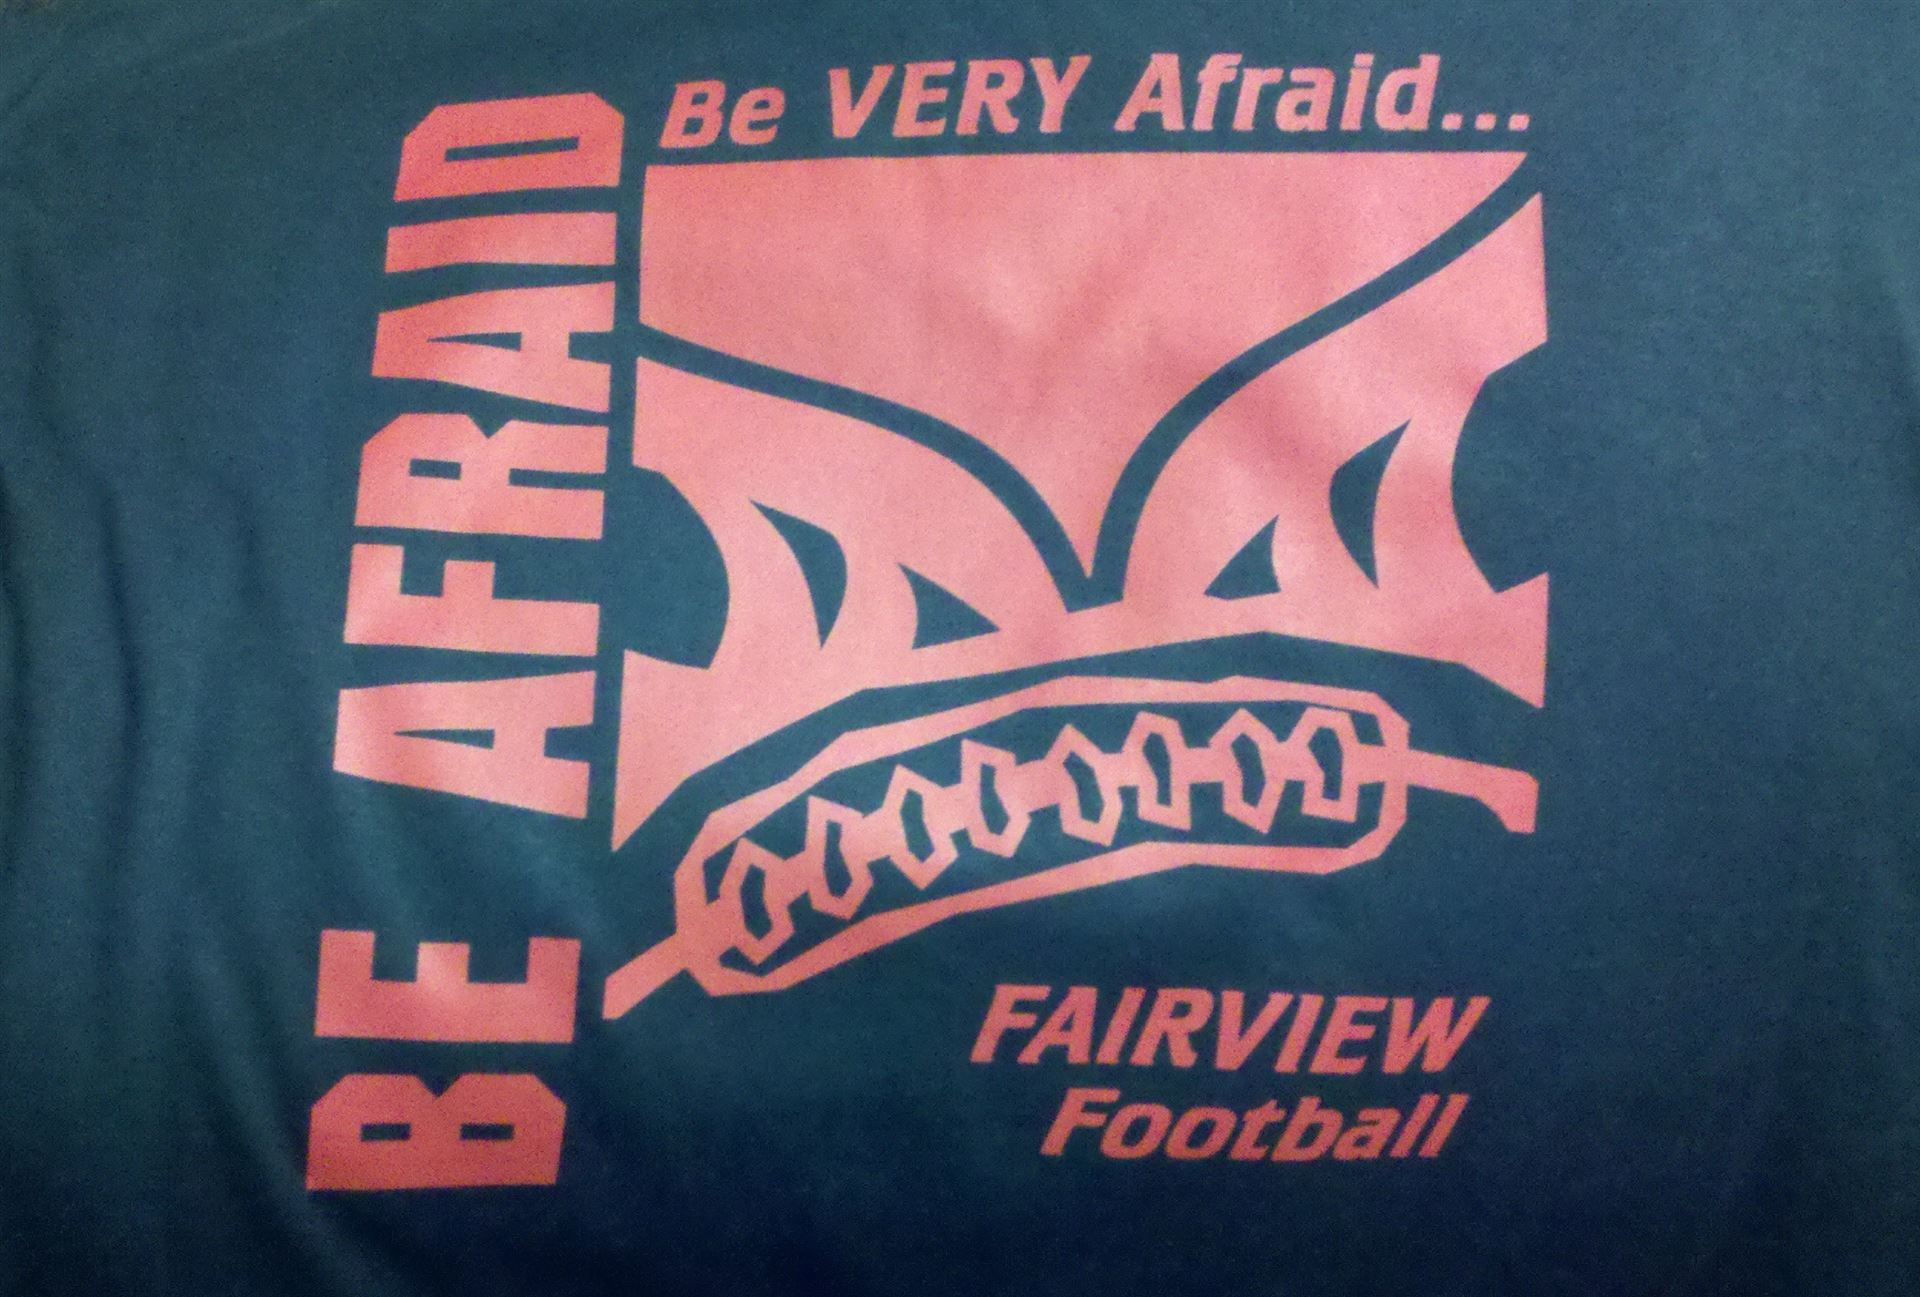 Fairview shirt design 18